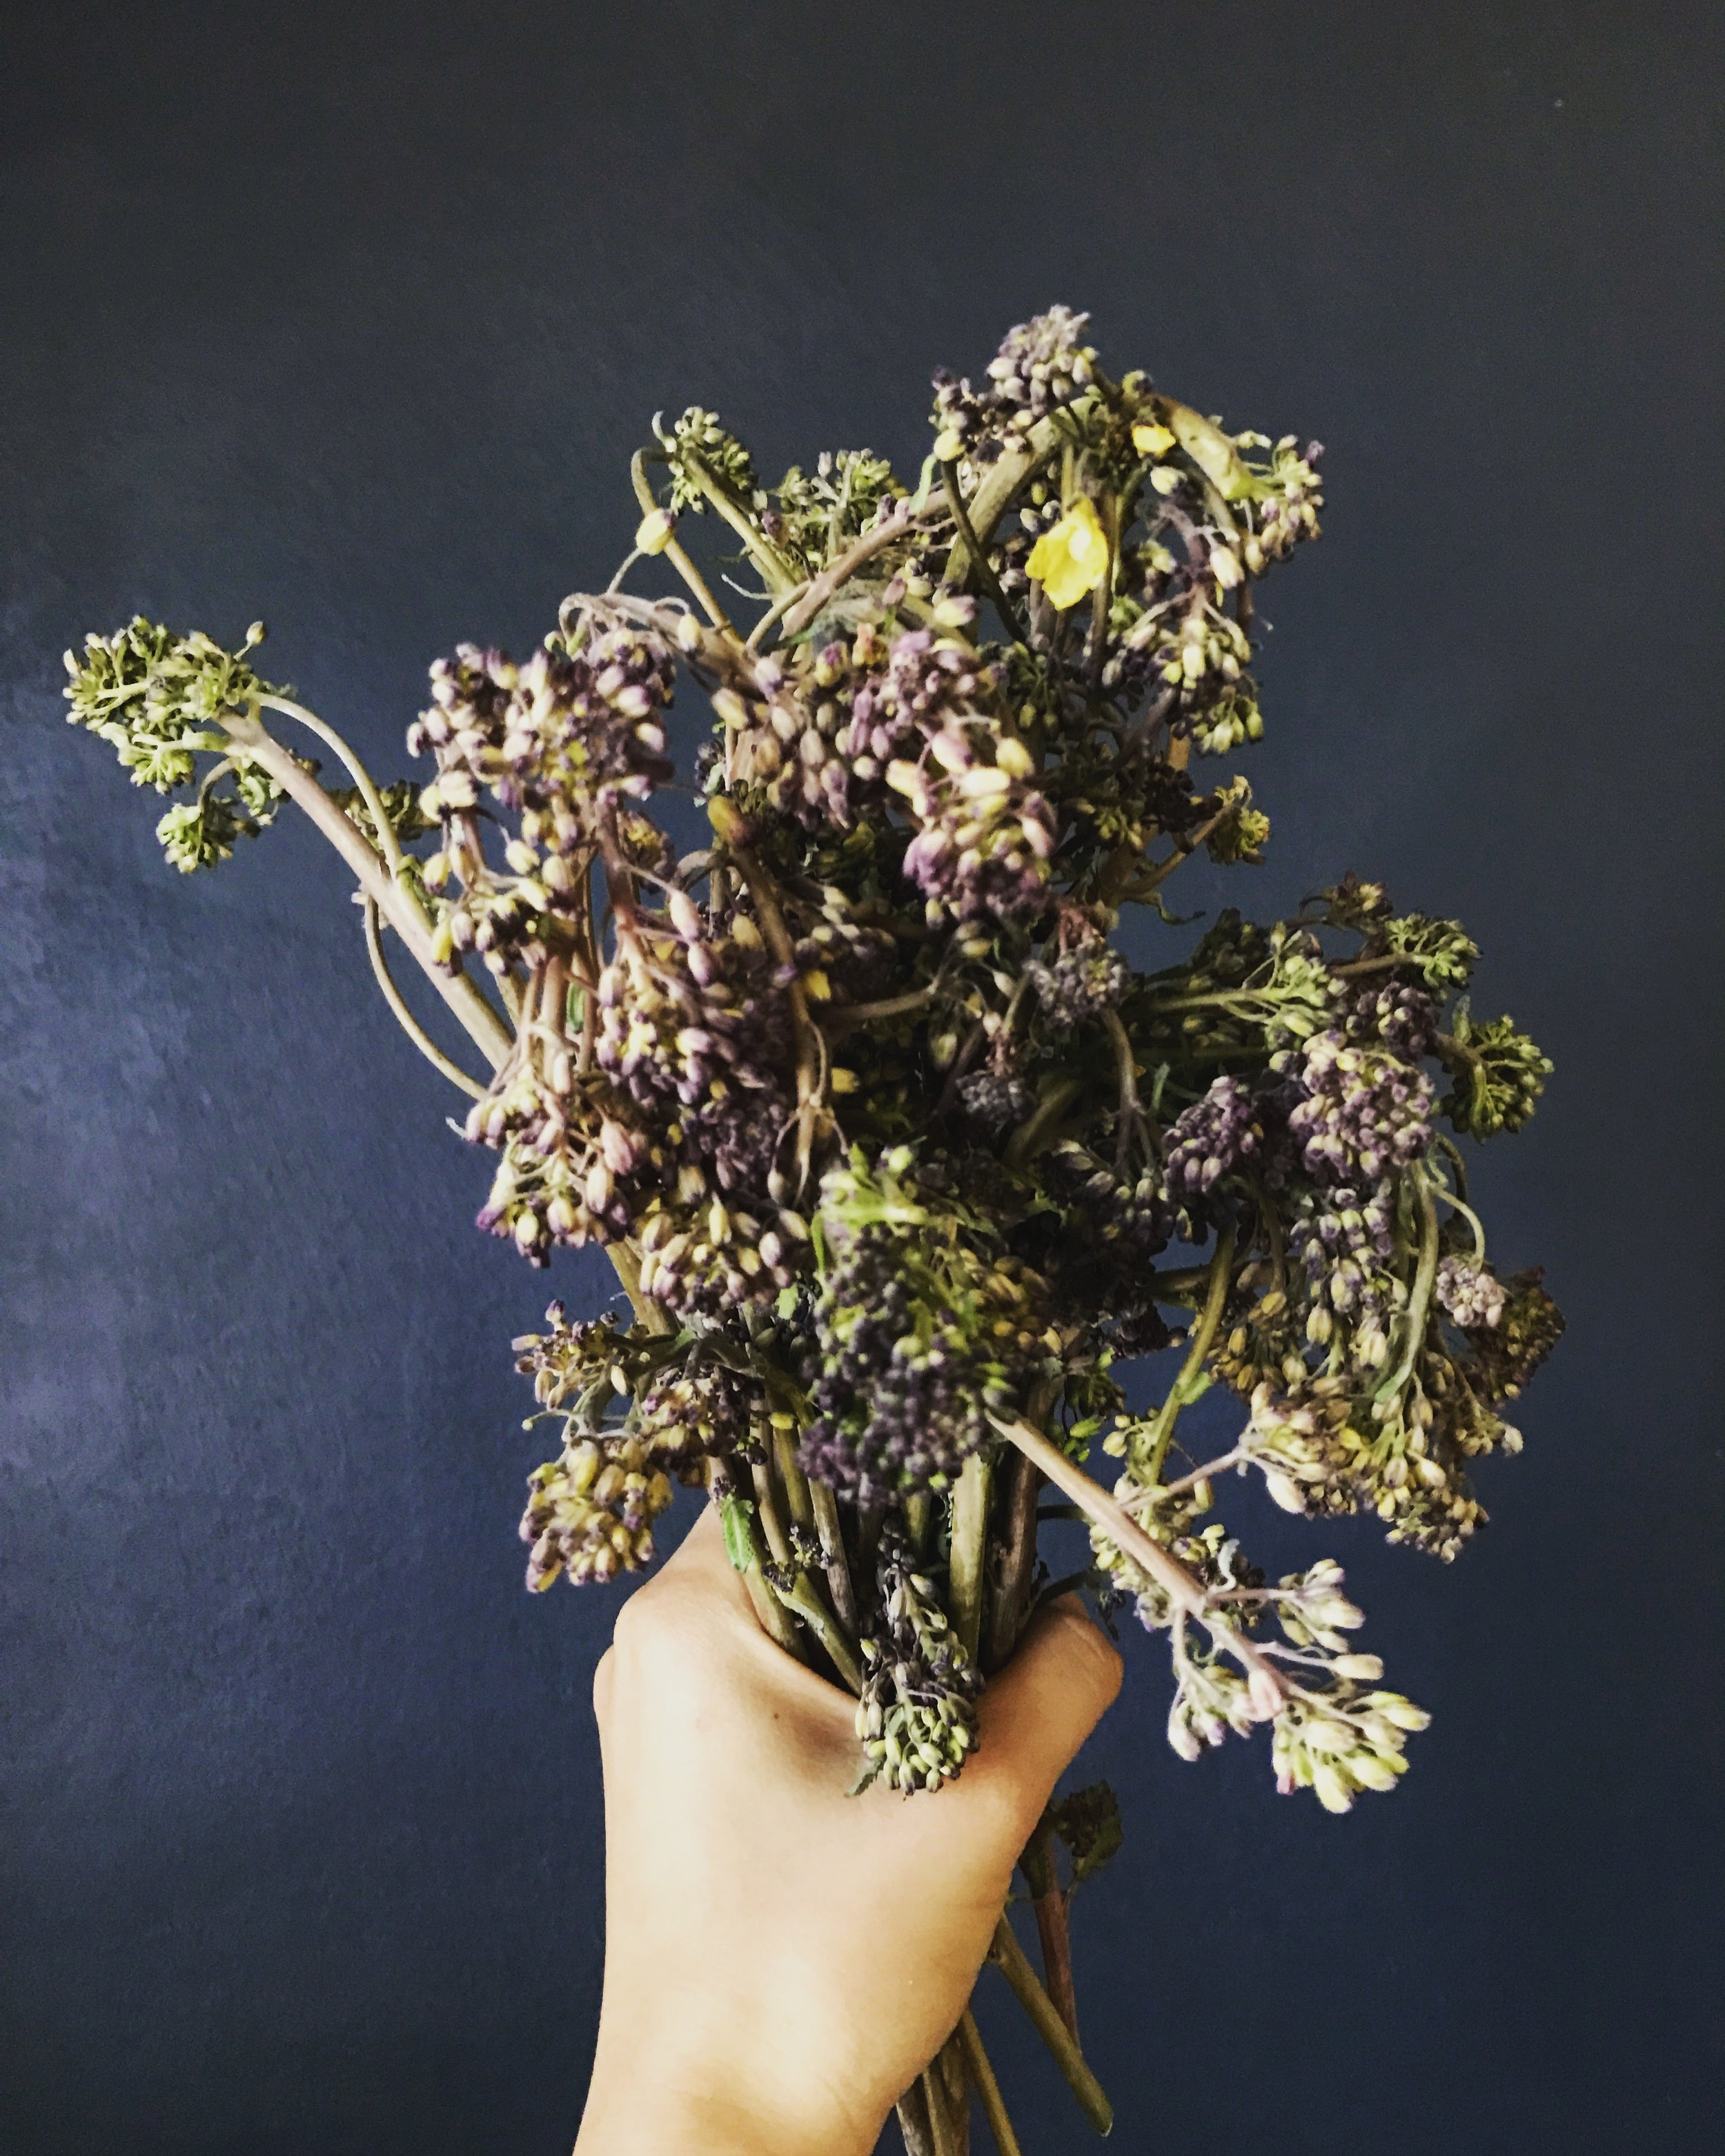 FYI, this is purple sprouting broccoli.